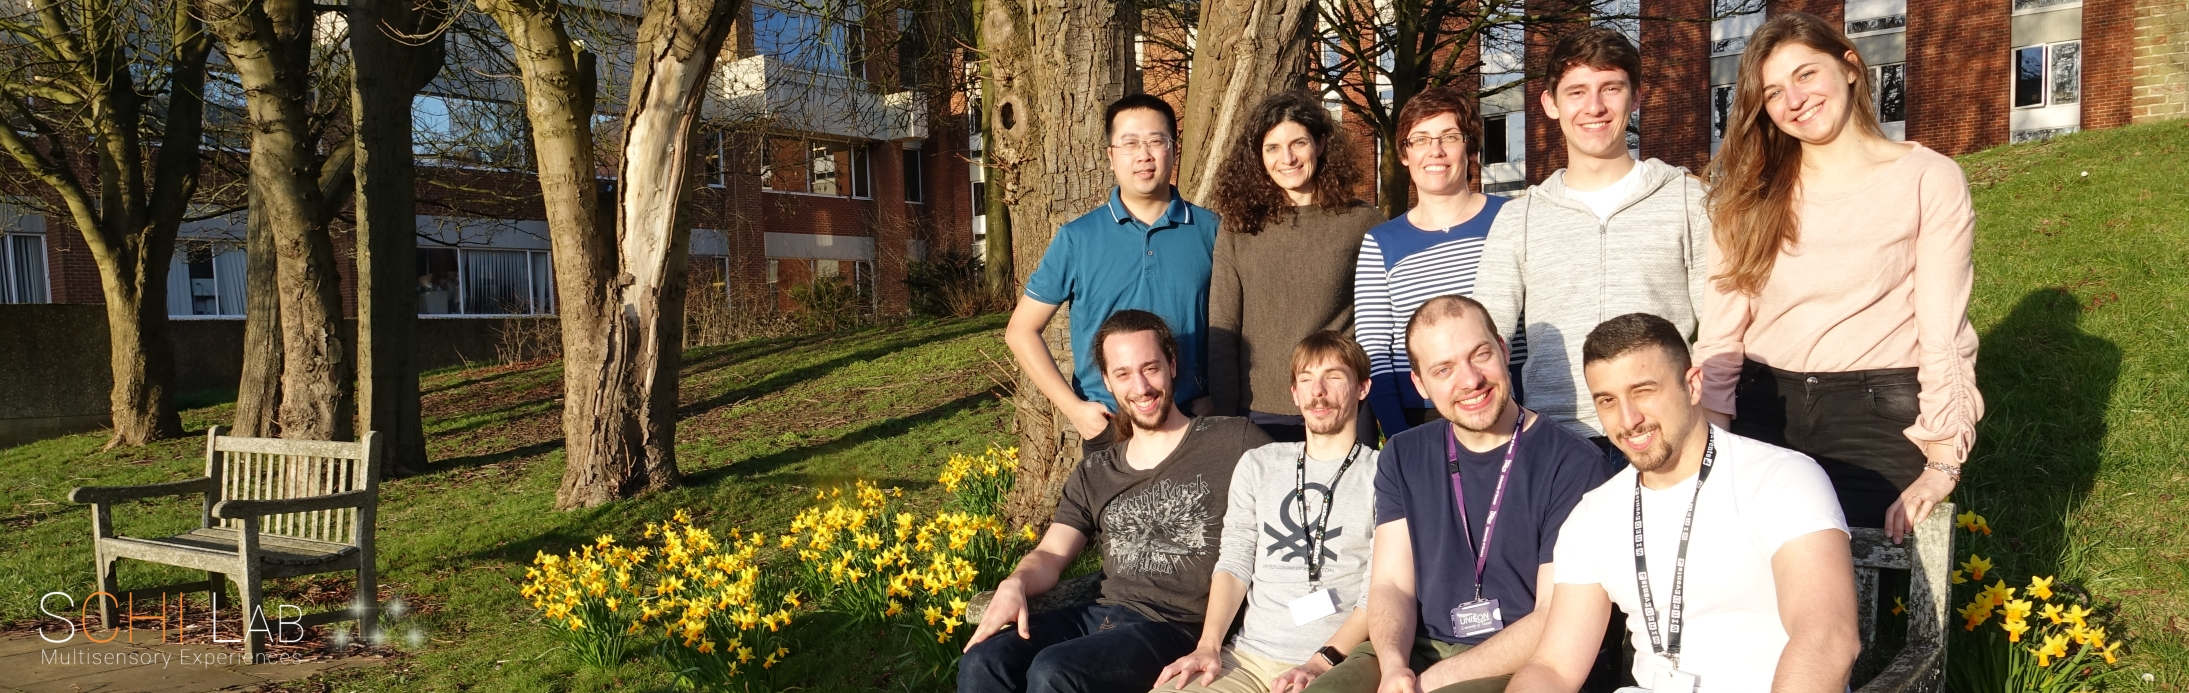 The group picture of the SCHI Lab team